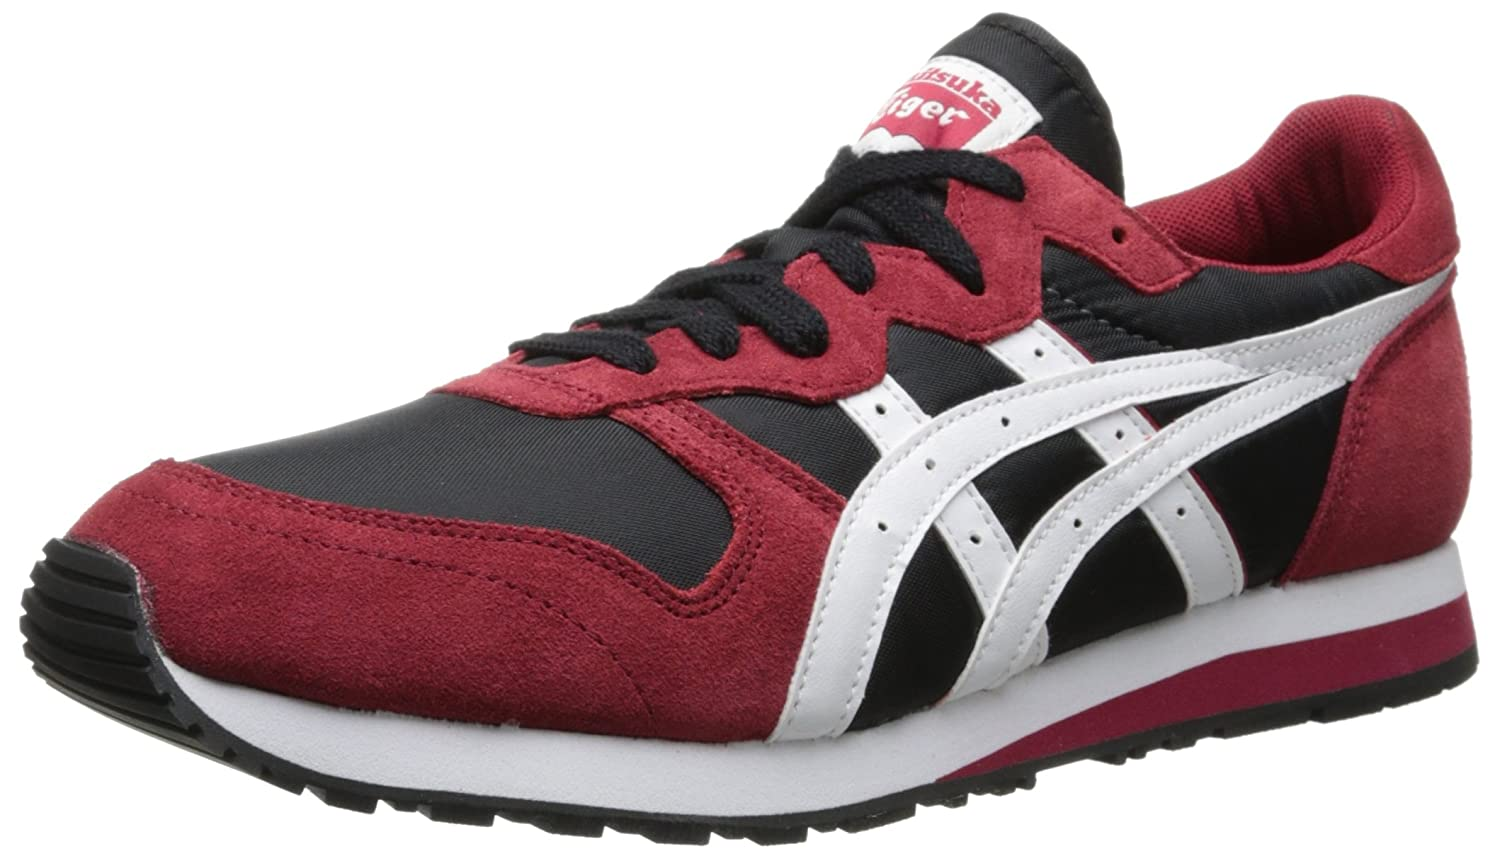 newest collection 8e5a2 4439c Onitsuka Tiger OC Runner Fashion Sneaker